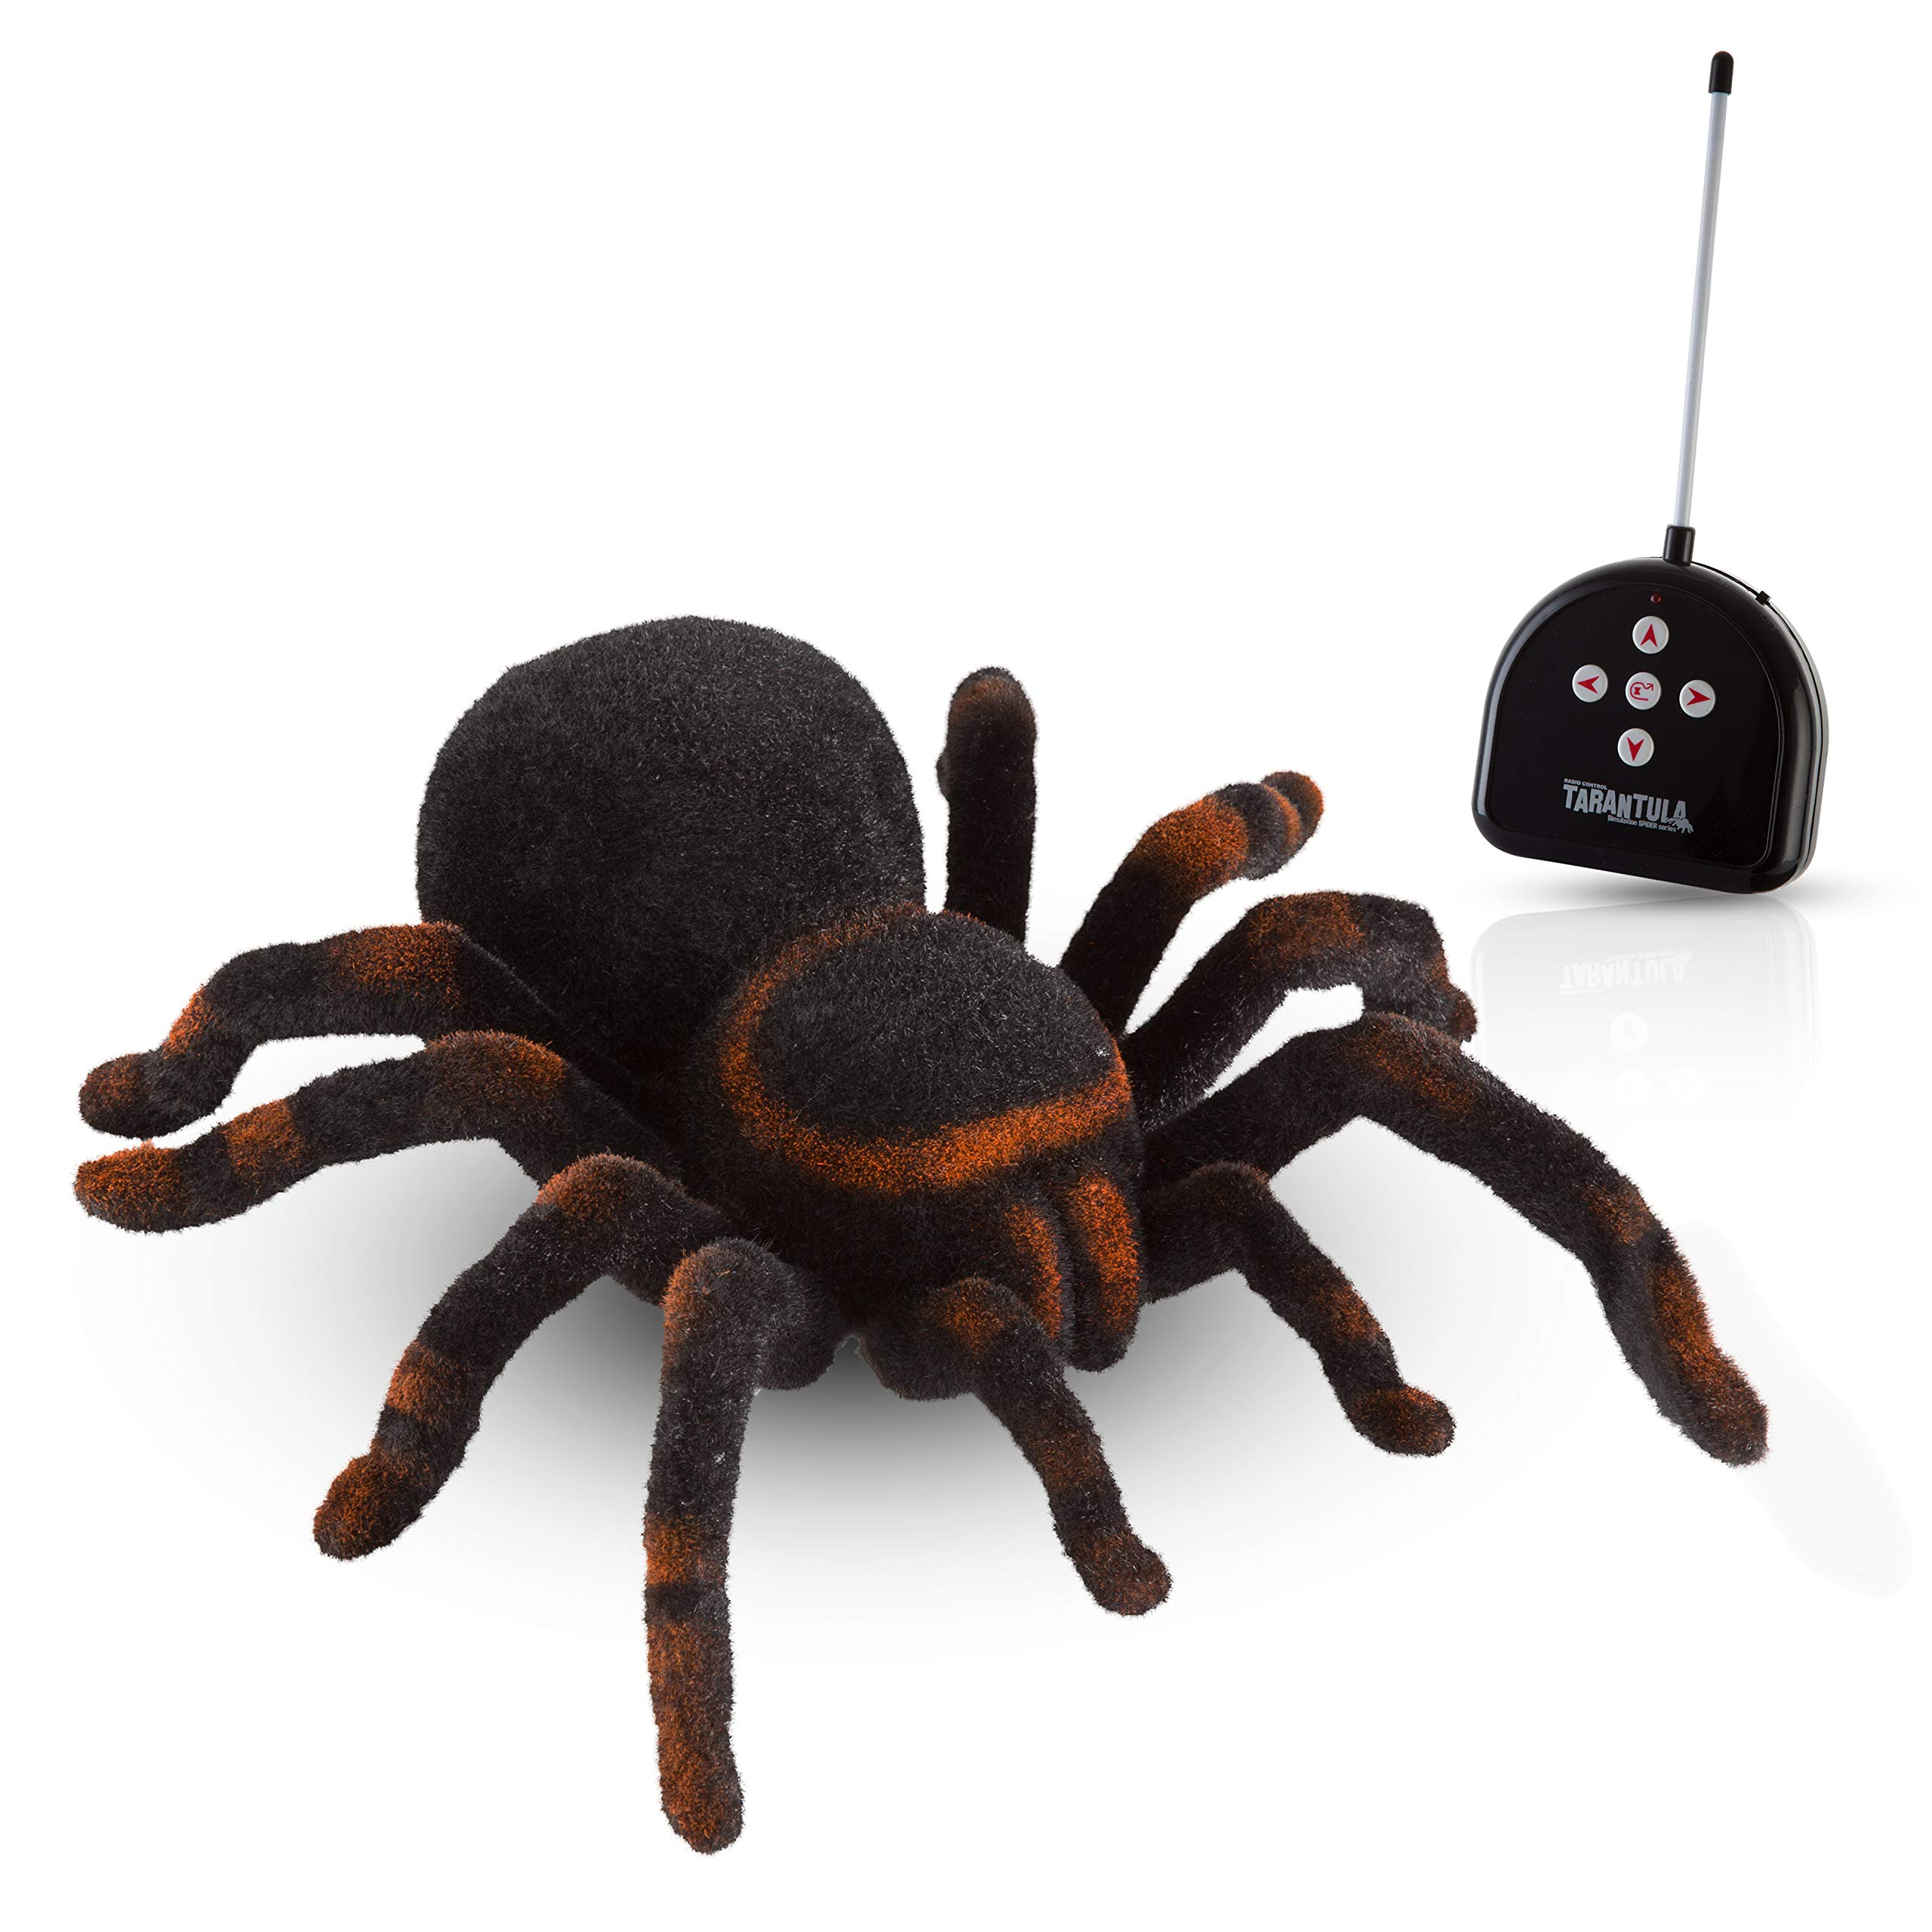 Advanced Play Remote Control Spider Toy Realistic 8 Inch Tarantula Animal Figures Funny Prank Joke Scare Gag Gifts for Halloween Christmas Party decor Birthdays Holidays April Fool Pranks by Advanced Play (Image #1)